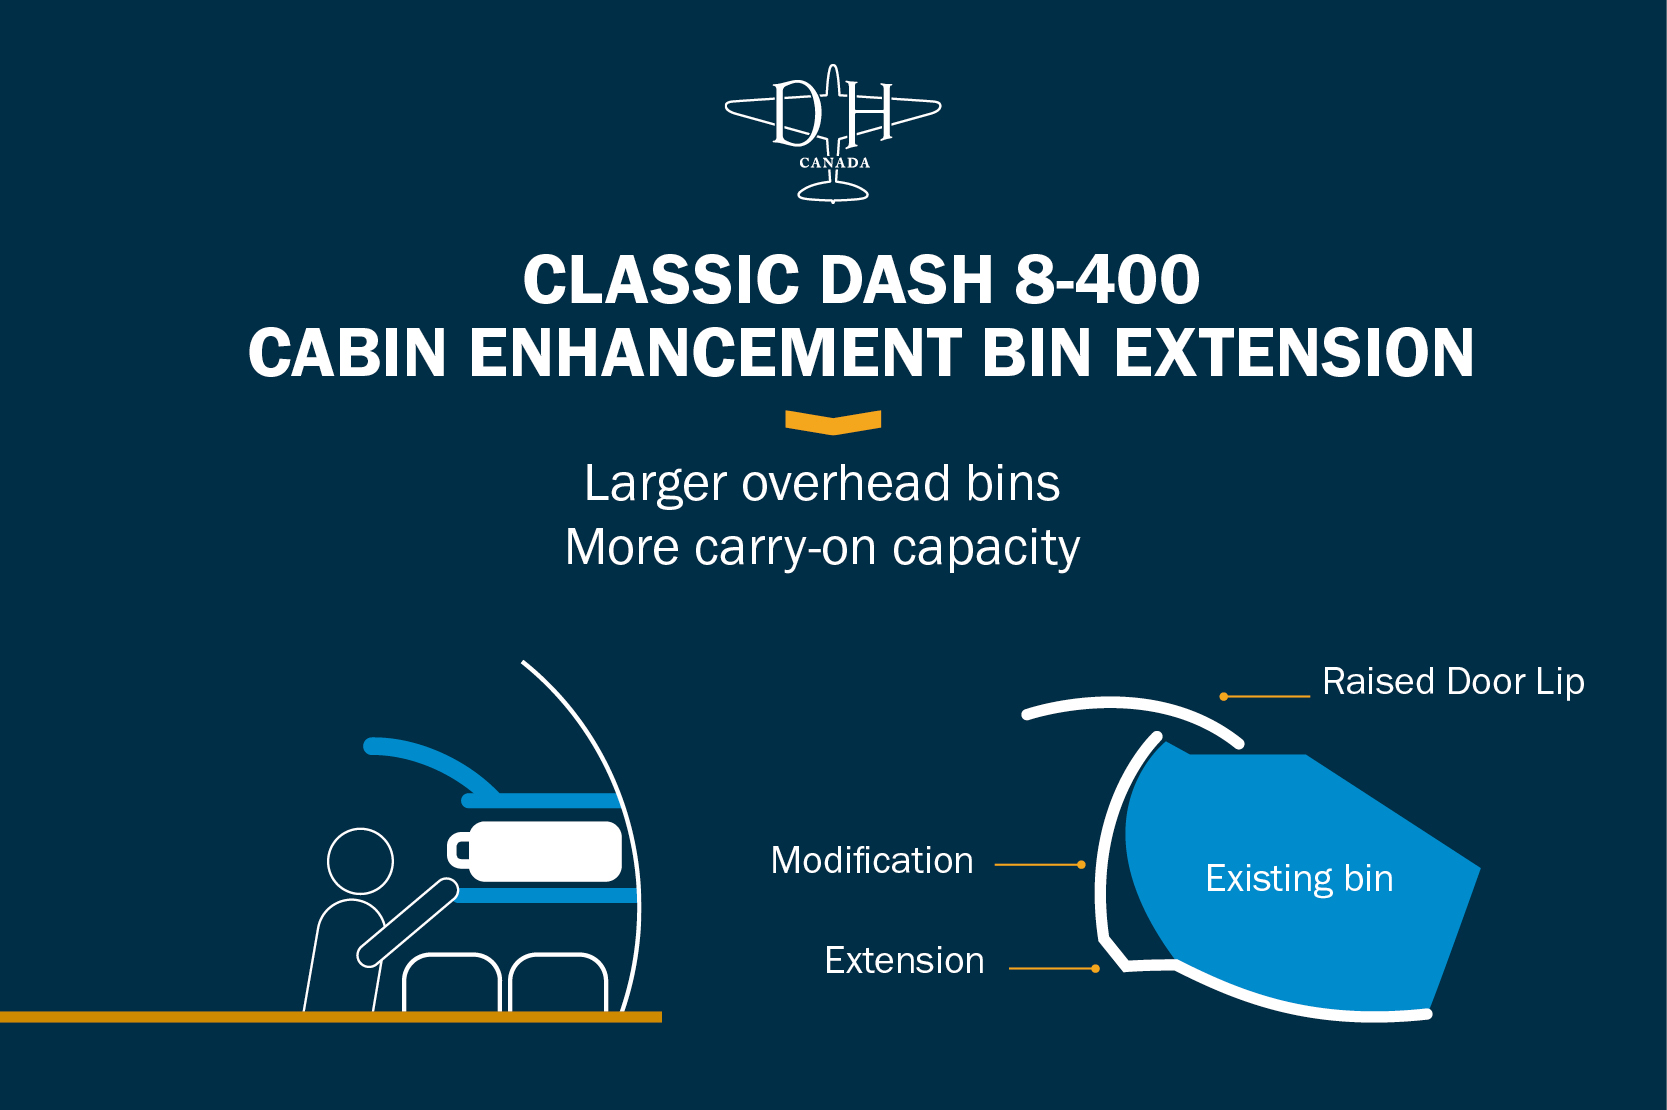 news: Nordic Aviation Capital to be De Havilland Canada's First Customer for Classic Overhead Bin Extension on Dash 8-400 Aircraft